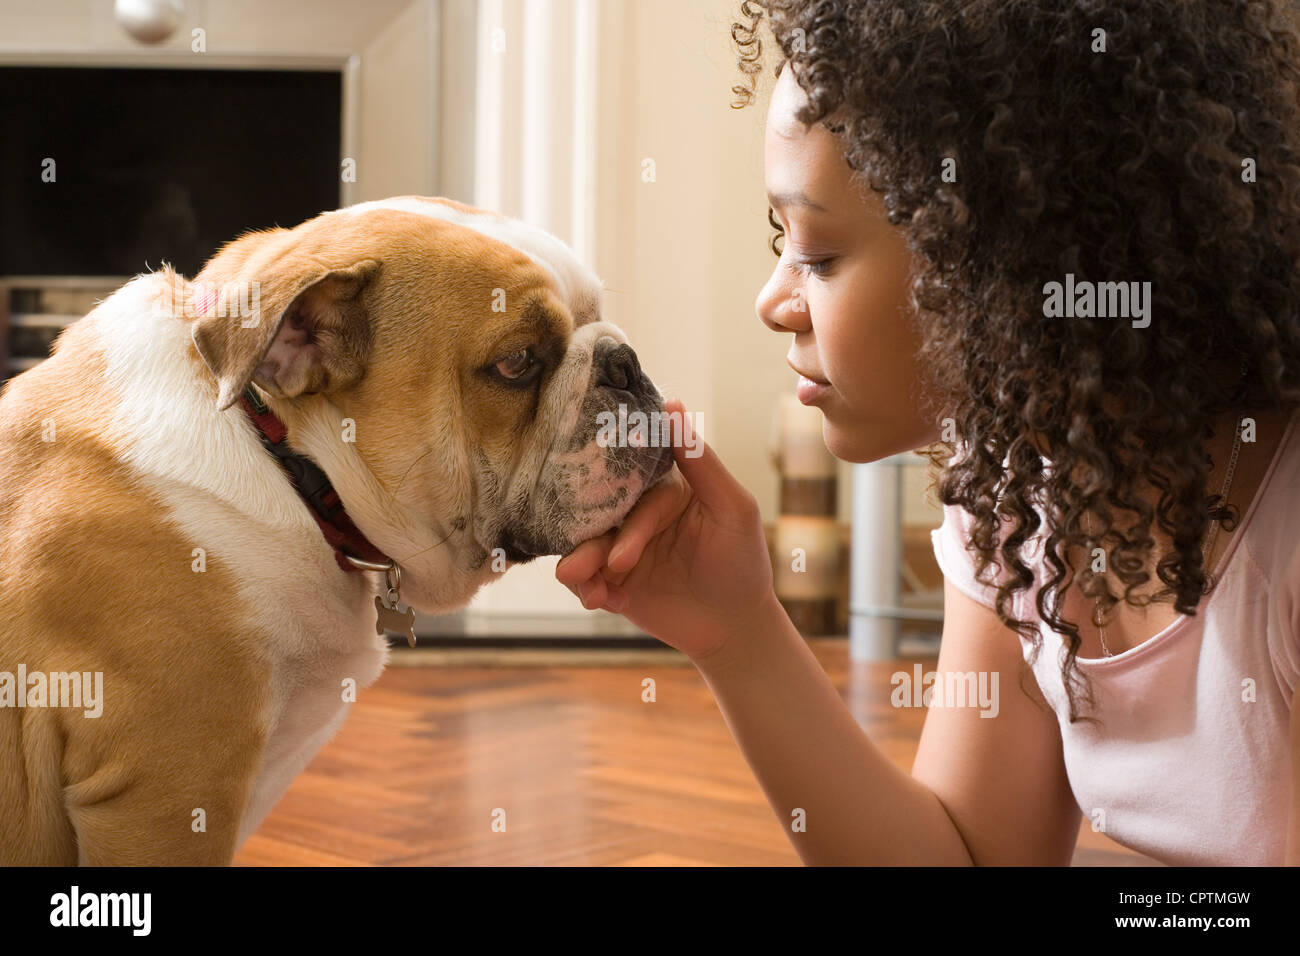 Young woman playing with her puppy dog - Stock Image